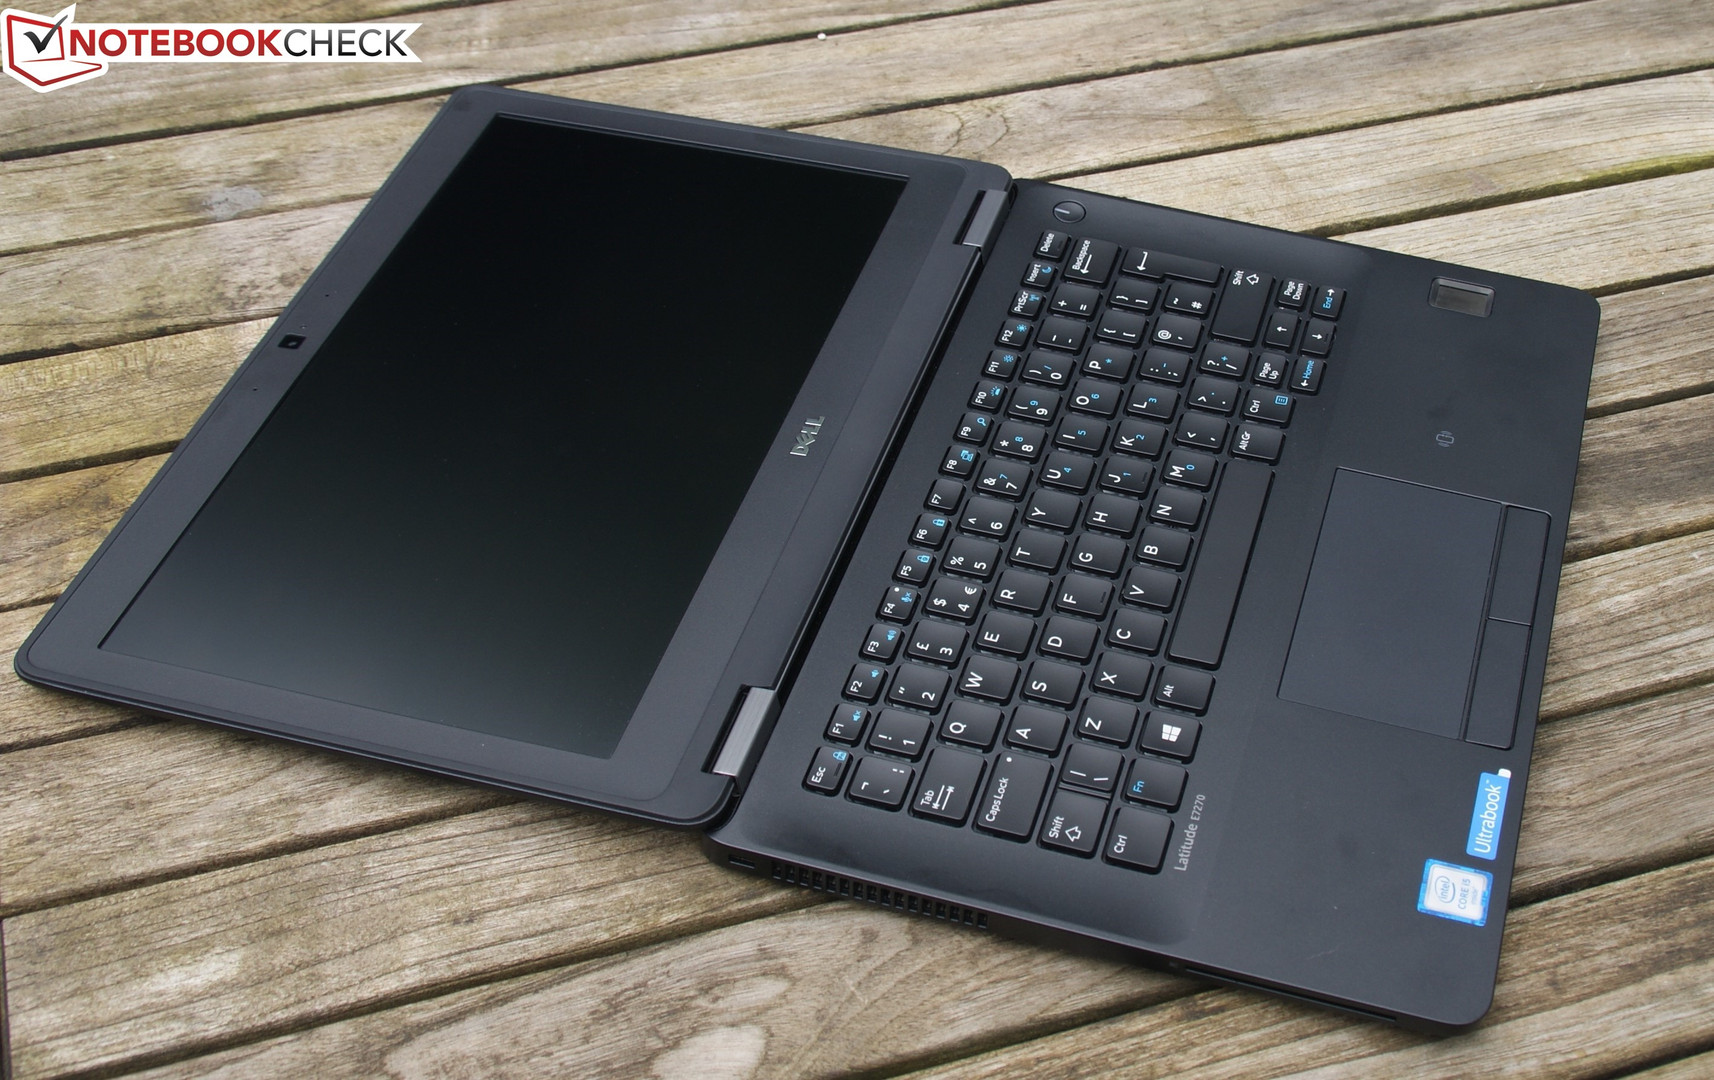 Dell Latitude 12 E7270 Notebook Review Notebookcheck Net